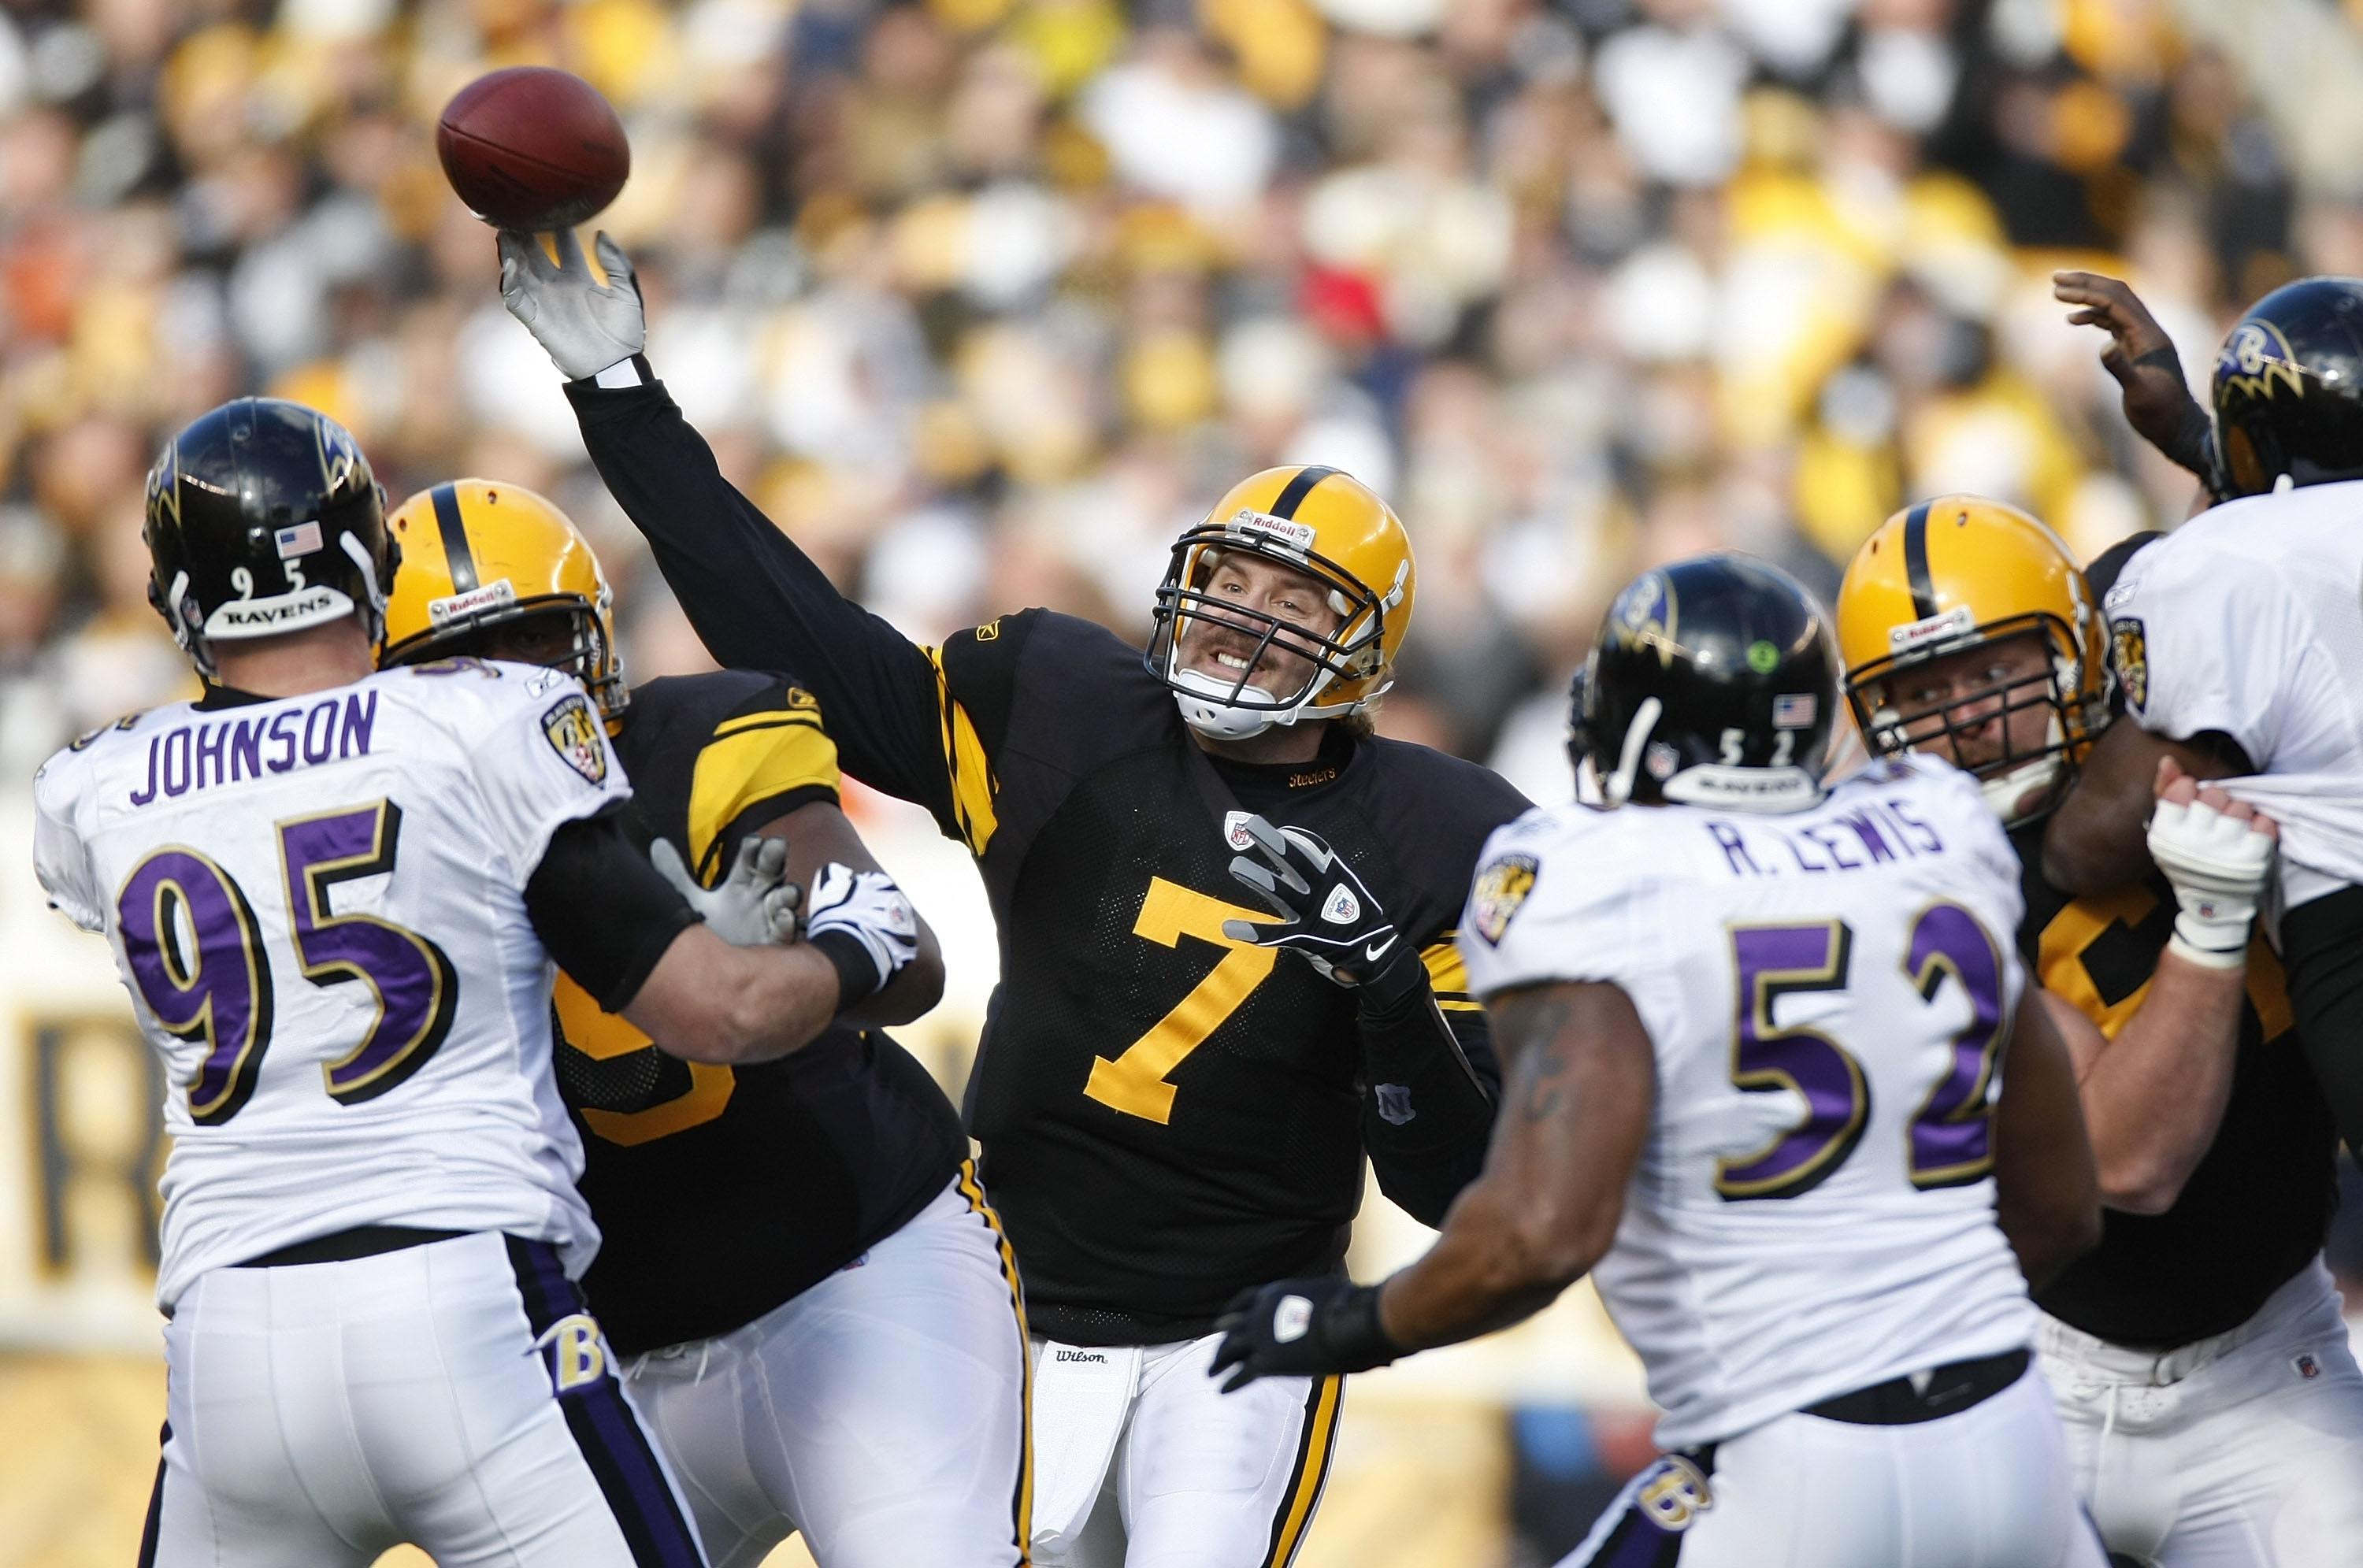 0815aad434e PITTSBURGH - DECEMBER 27  Ben Roethlisberger  7 of the Pittsburgh Steelers  throws a first